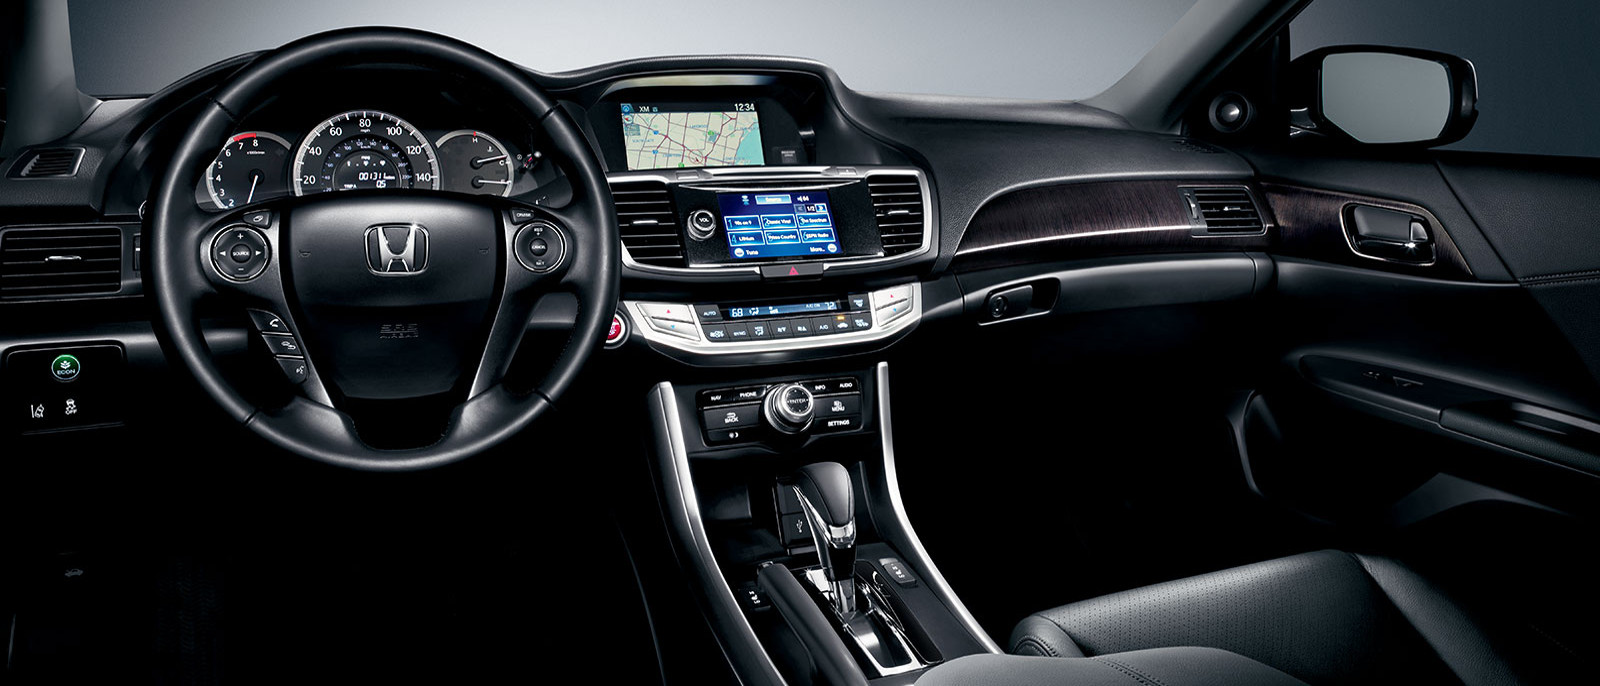 2014 Honda Accord Sedan Interior